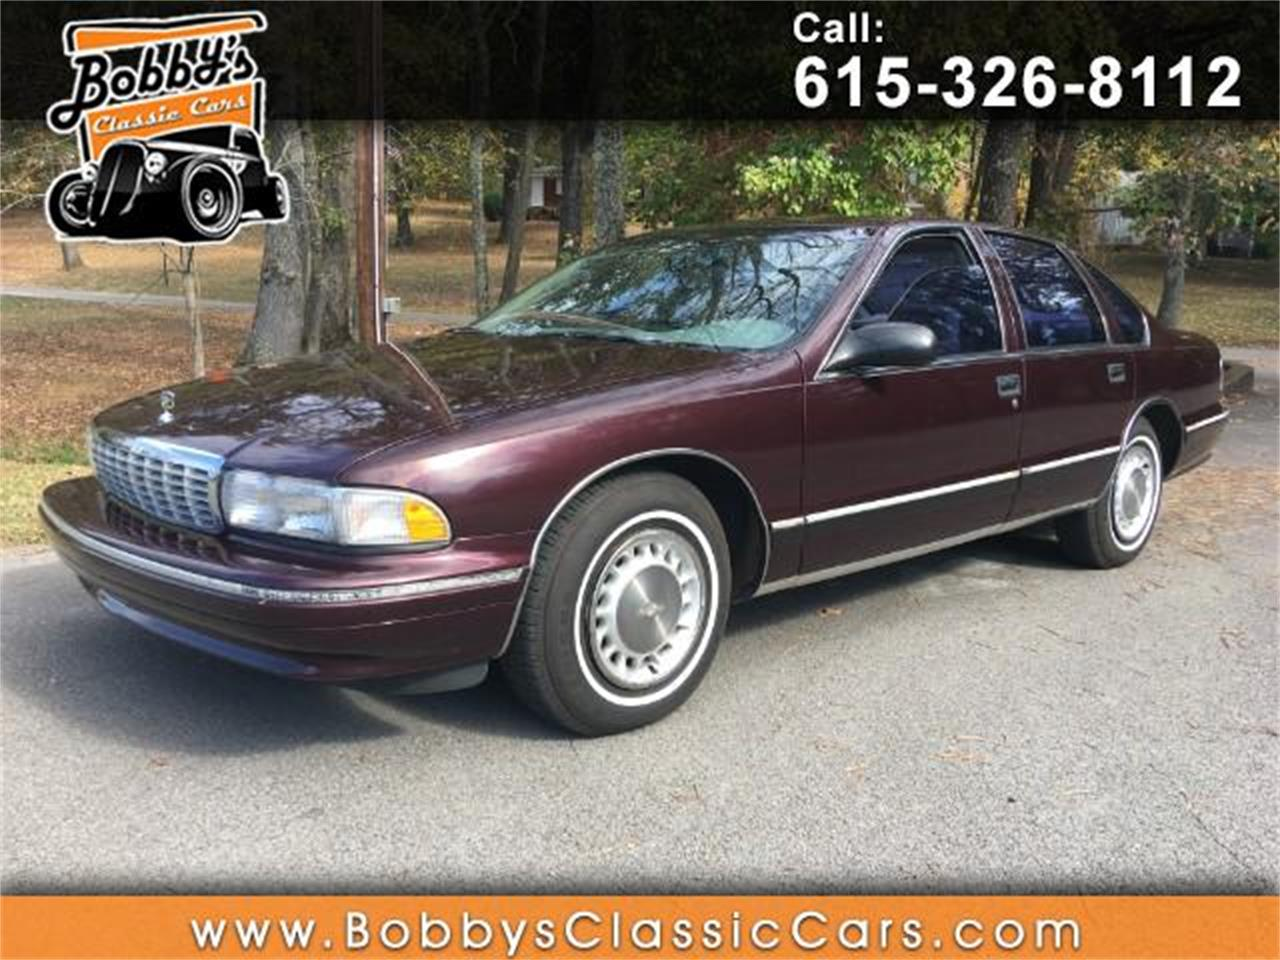 For Sale: 1996 Chevrolet Caprice in Dickson, Tennessee